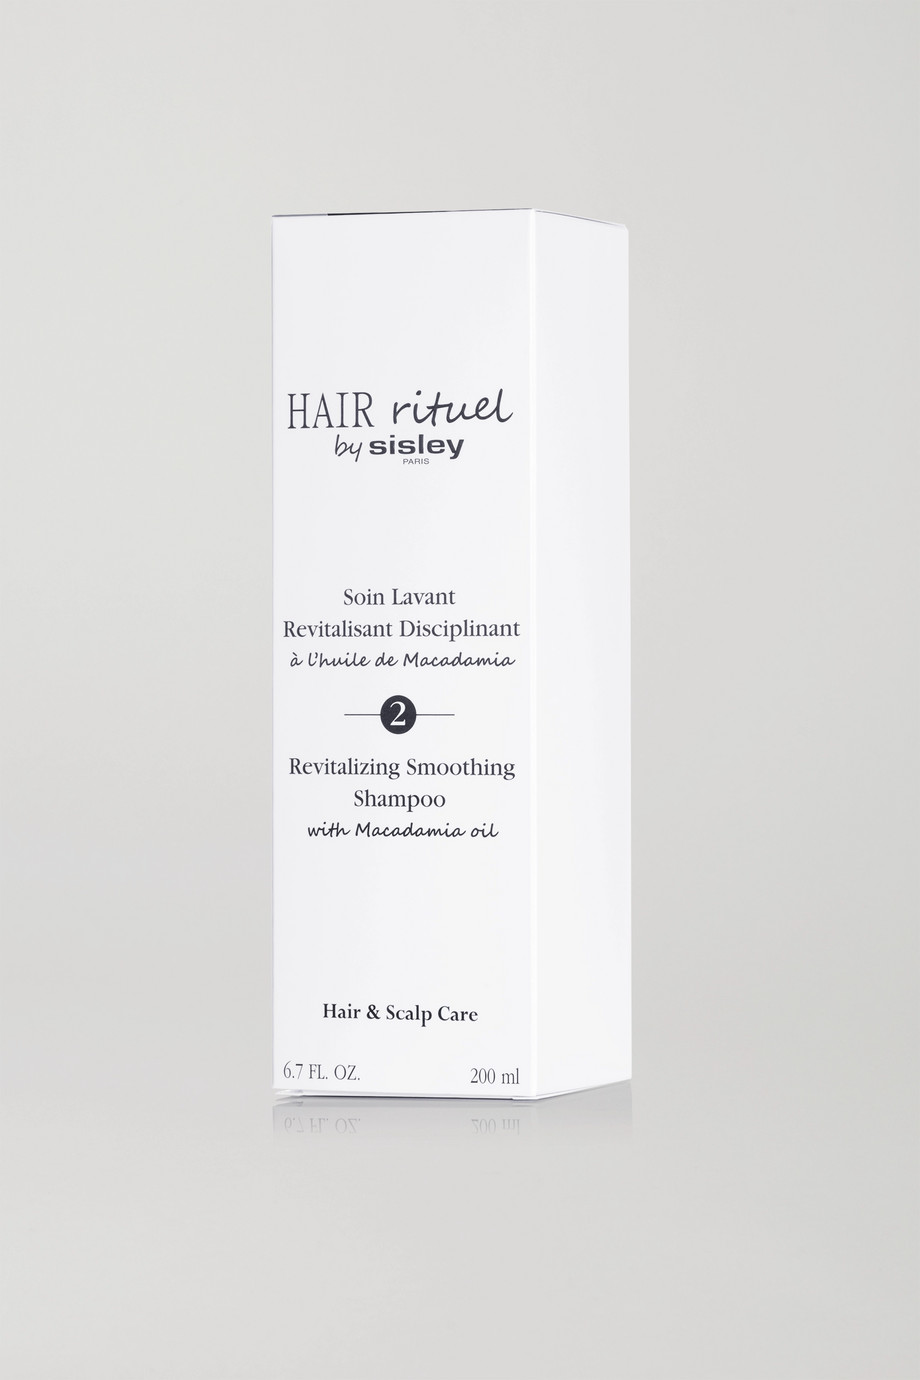 HAIR rituel by Sisley Revitalizing Smoothing Shampoo with Macademia Oil, 200ml